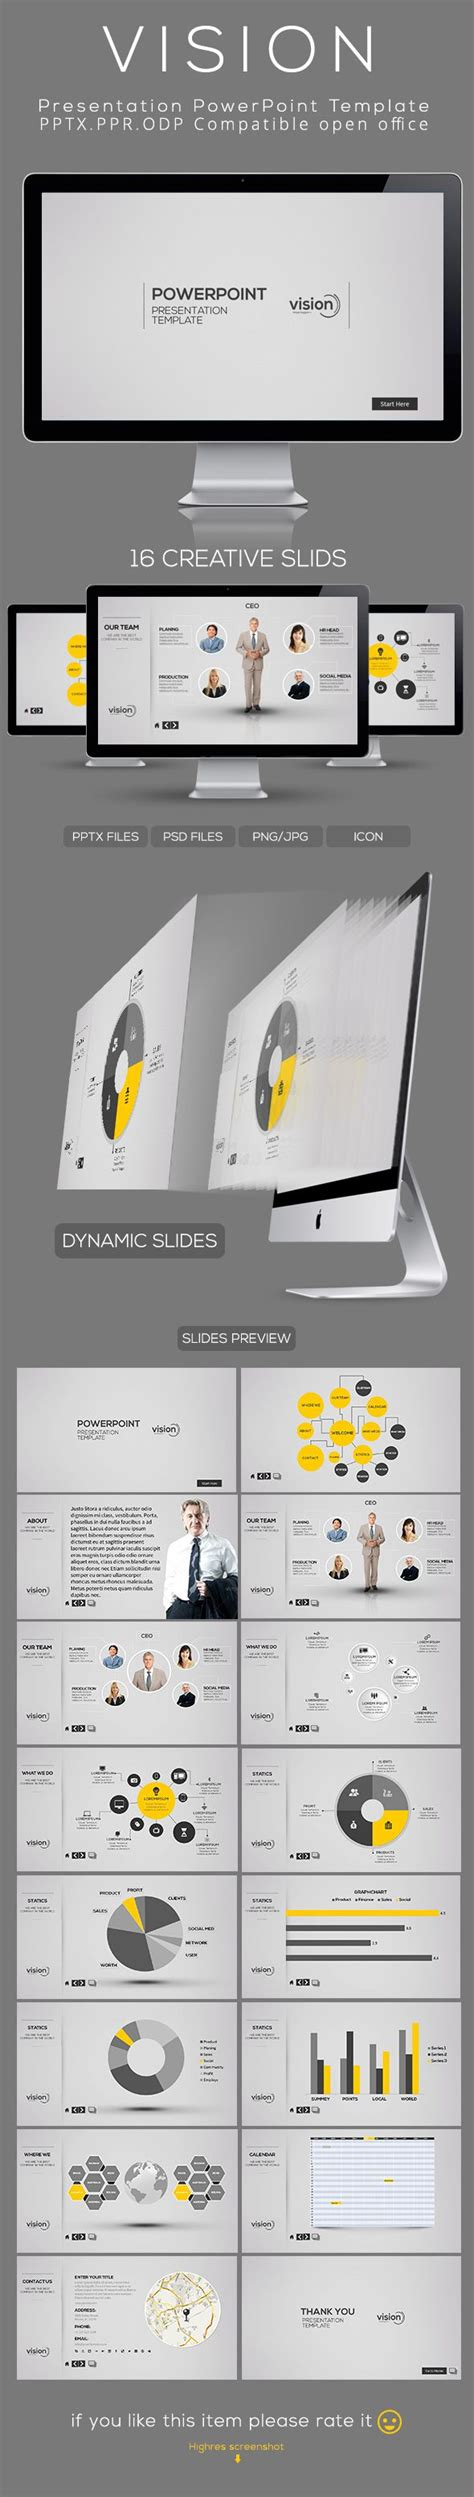 buy professional powerpoint templates best 25 professional powerpoint ideas on